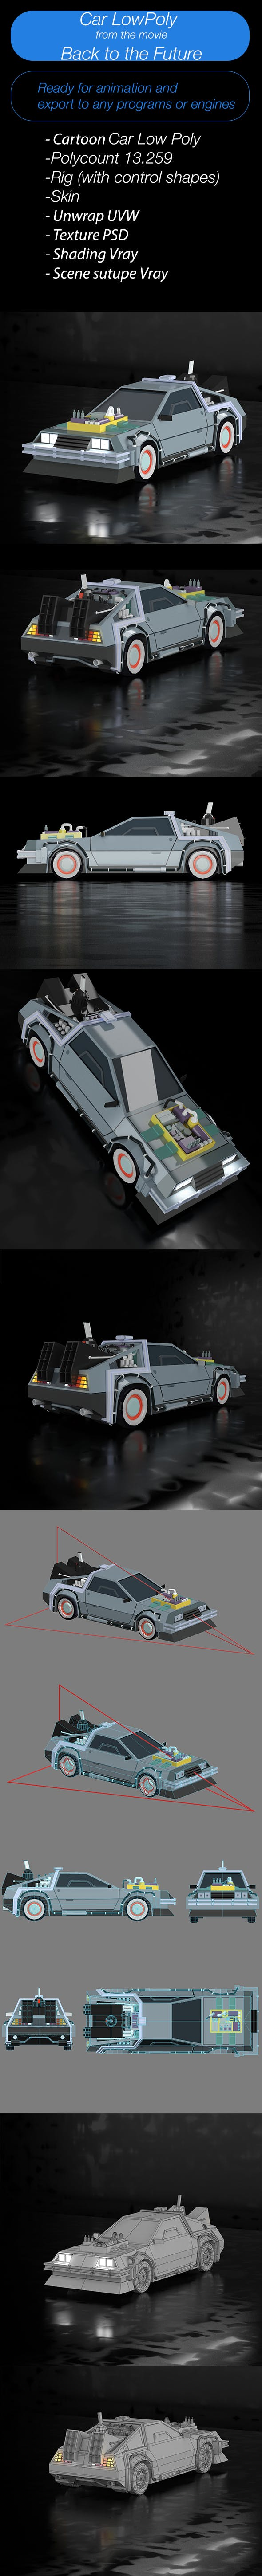 Сar LowPoly  from the movie Back to the Future - 3DOcean Item for Sale